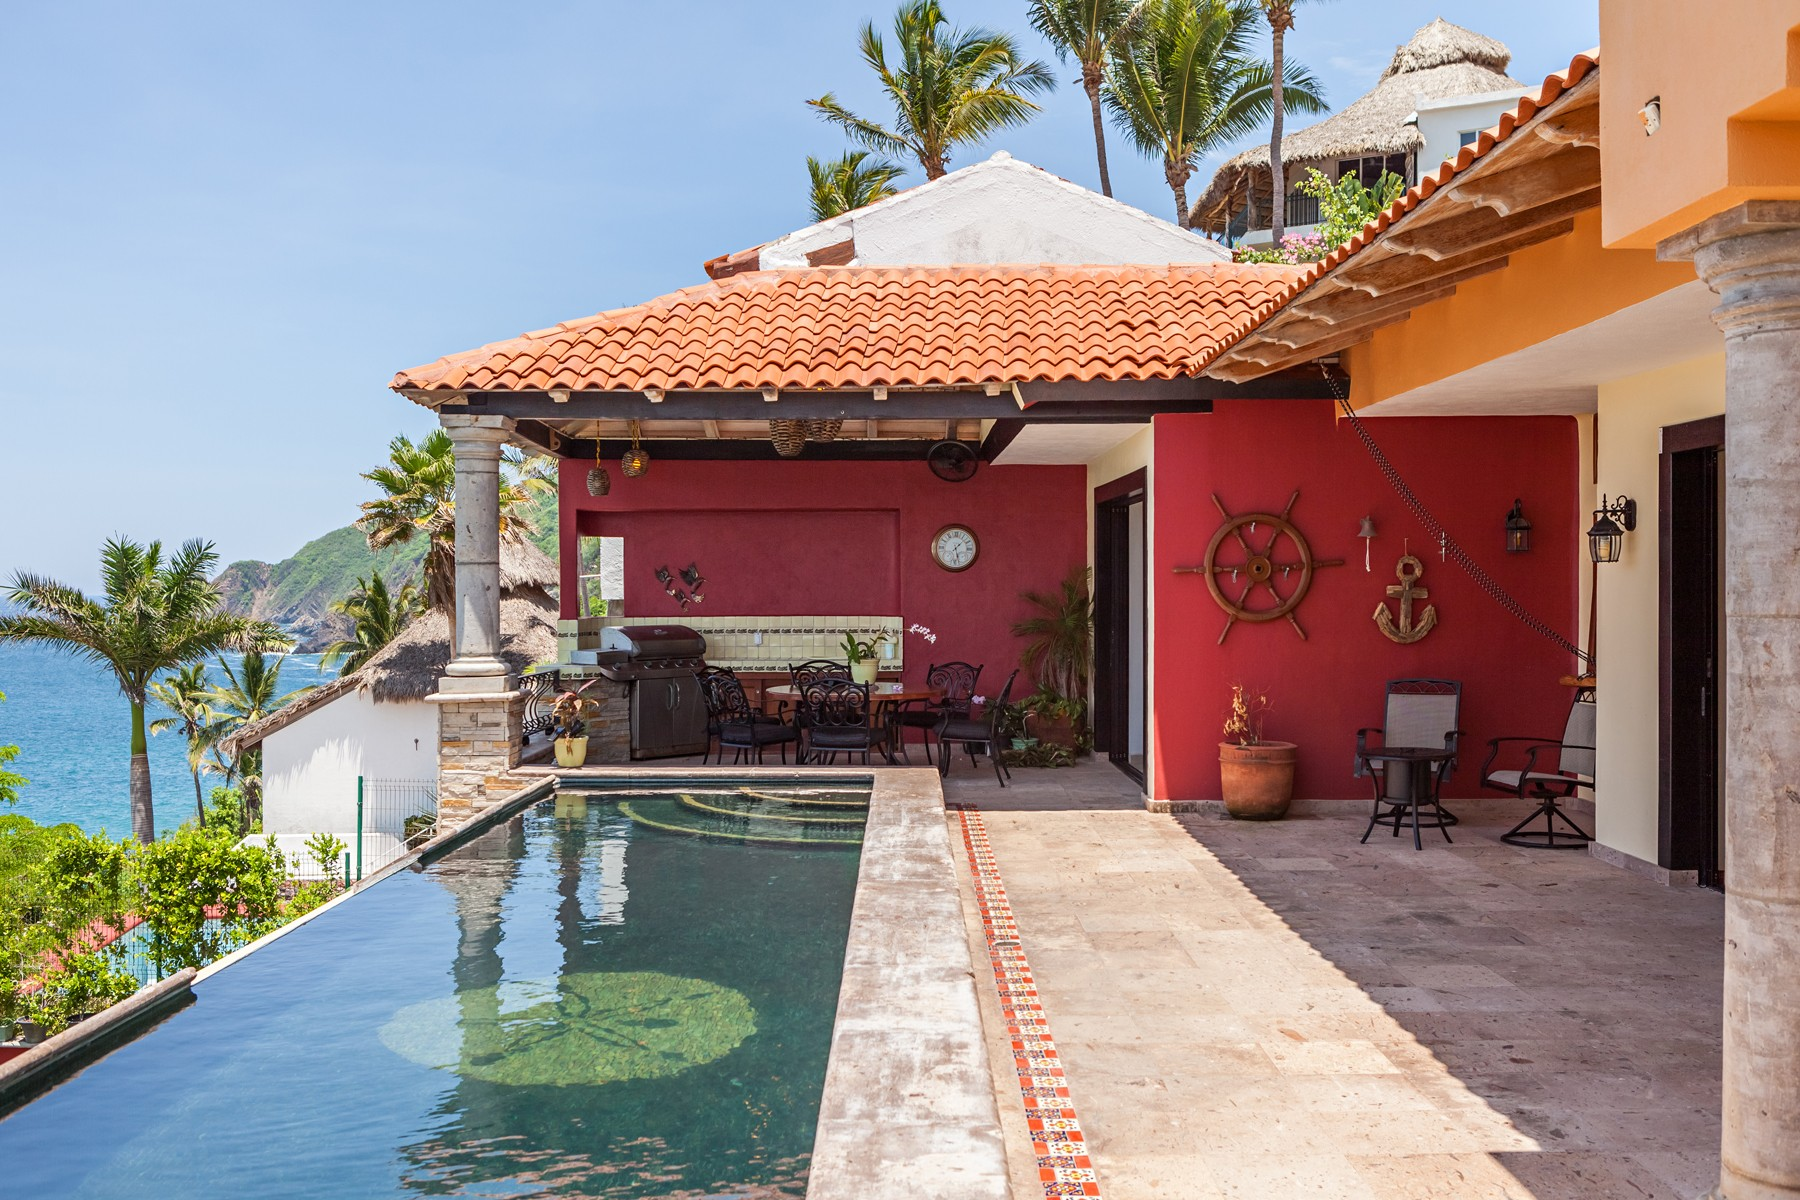 Single Family Home for Sale at Casa Tranquila, Manzanillo Calle Almendros 100 Manzanillo, 28860 Mexico